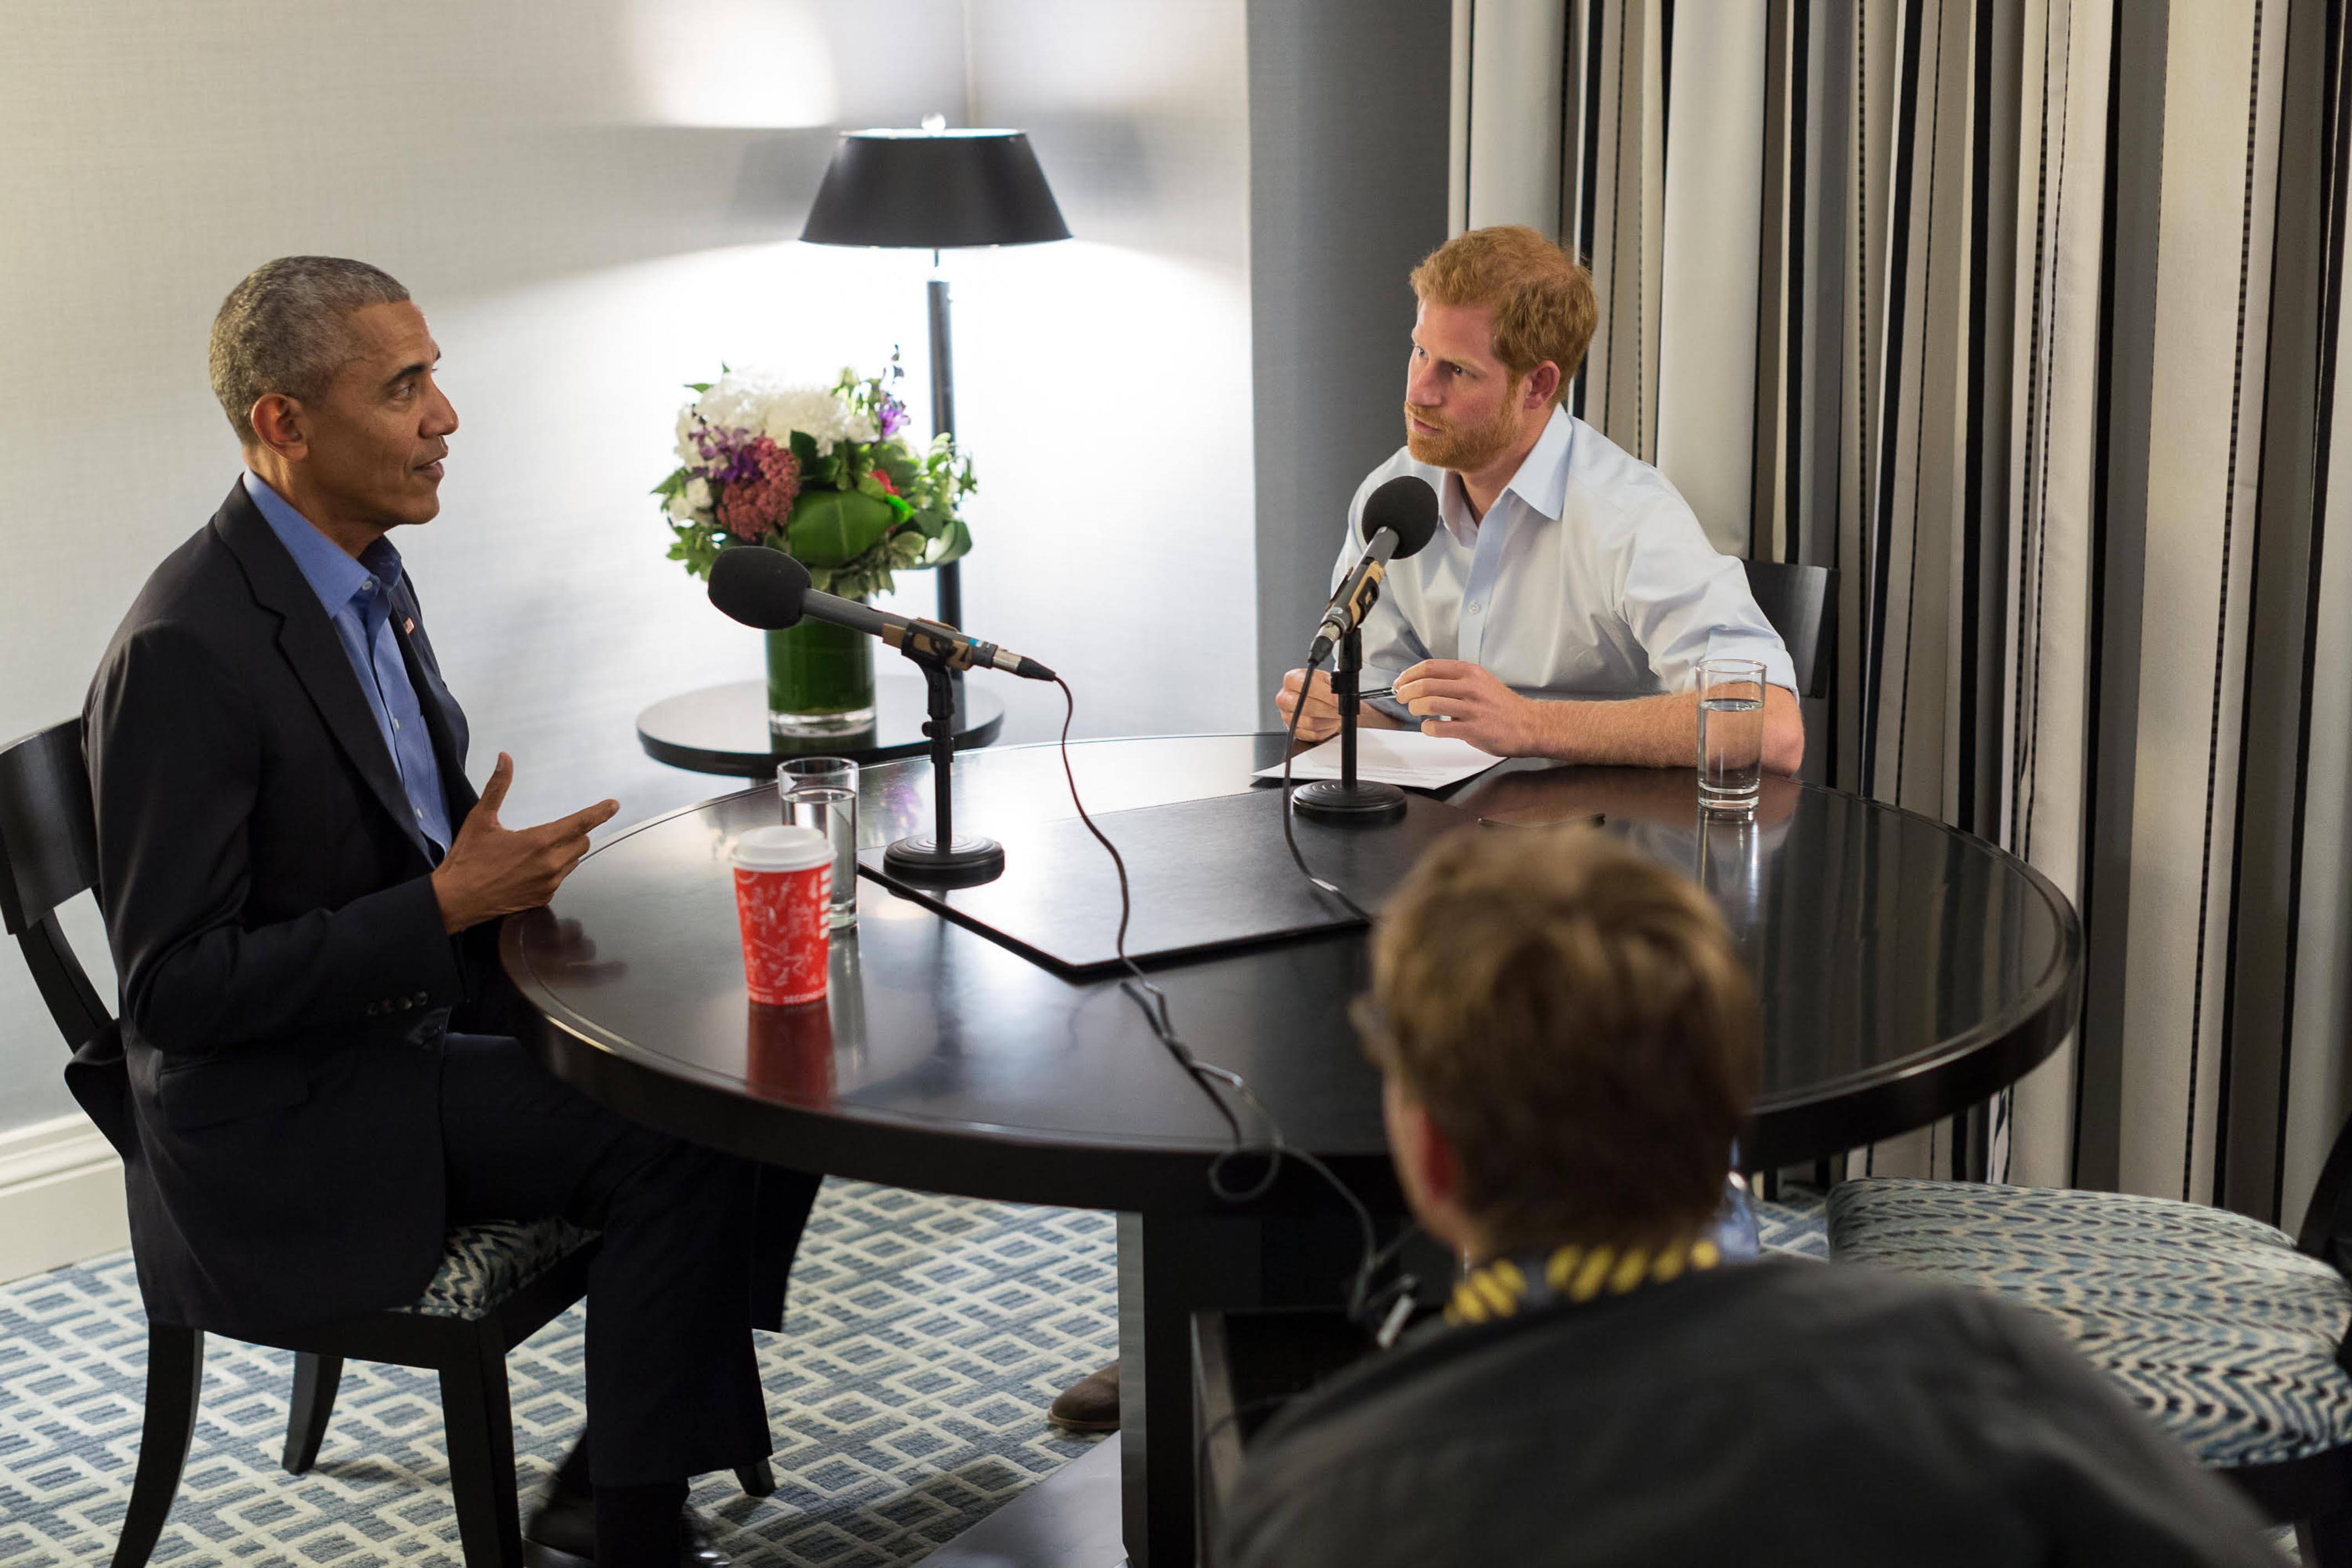 Prince Harry interviews former US President Barack Obama as